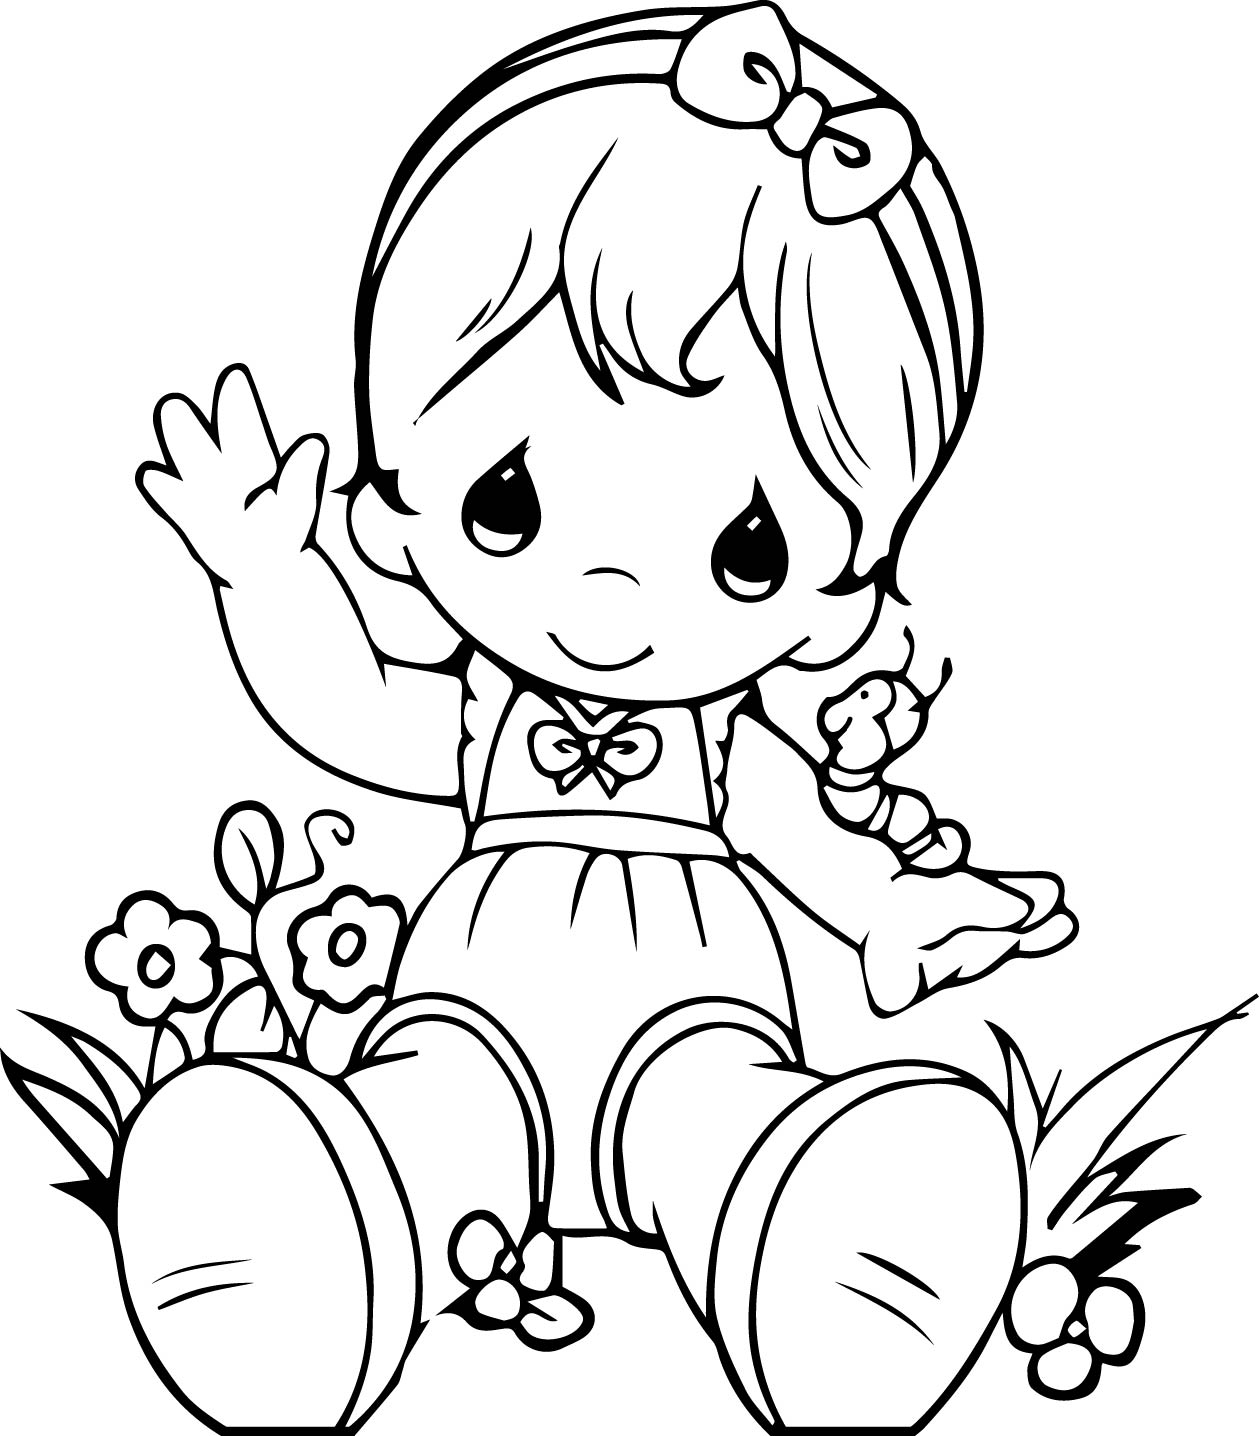 Precious Moments Girl Coloring Page | Wecoloringpage.com